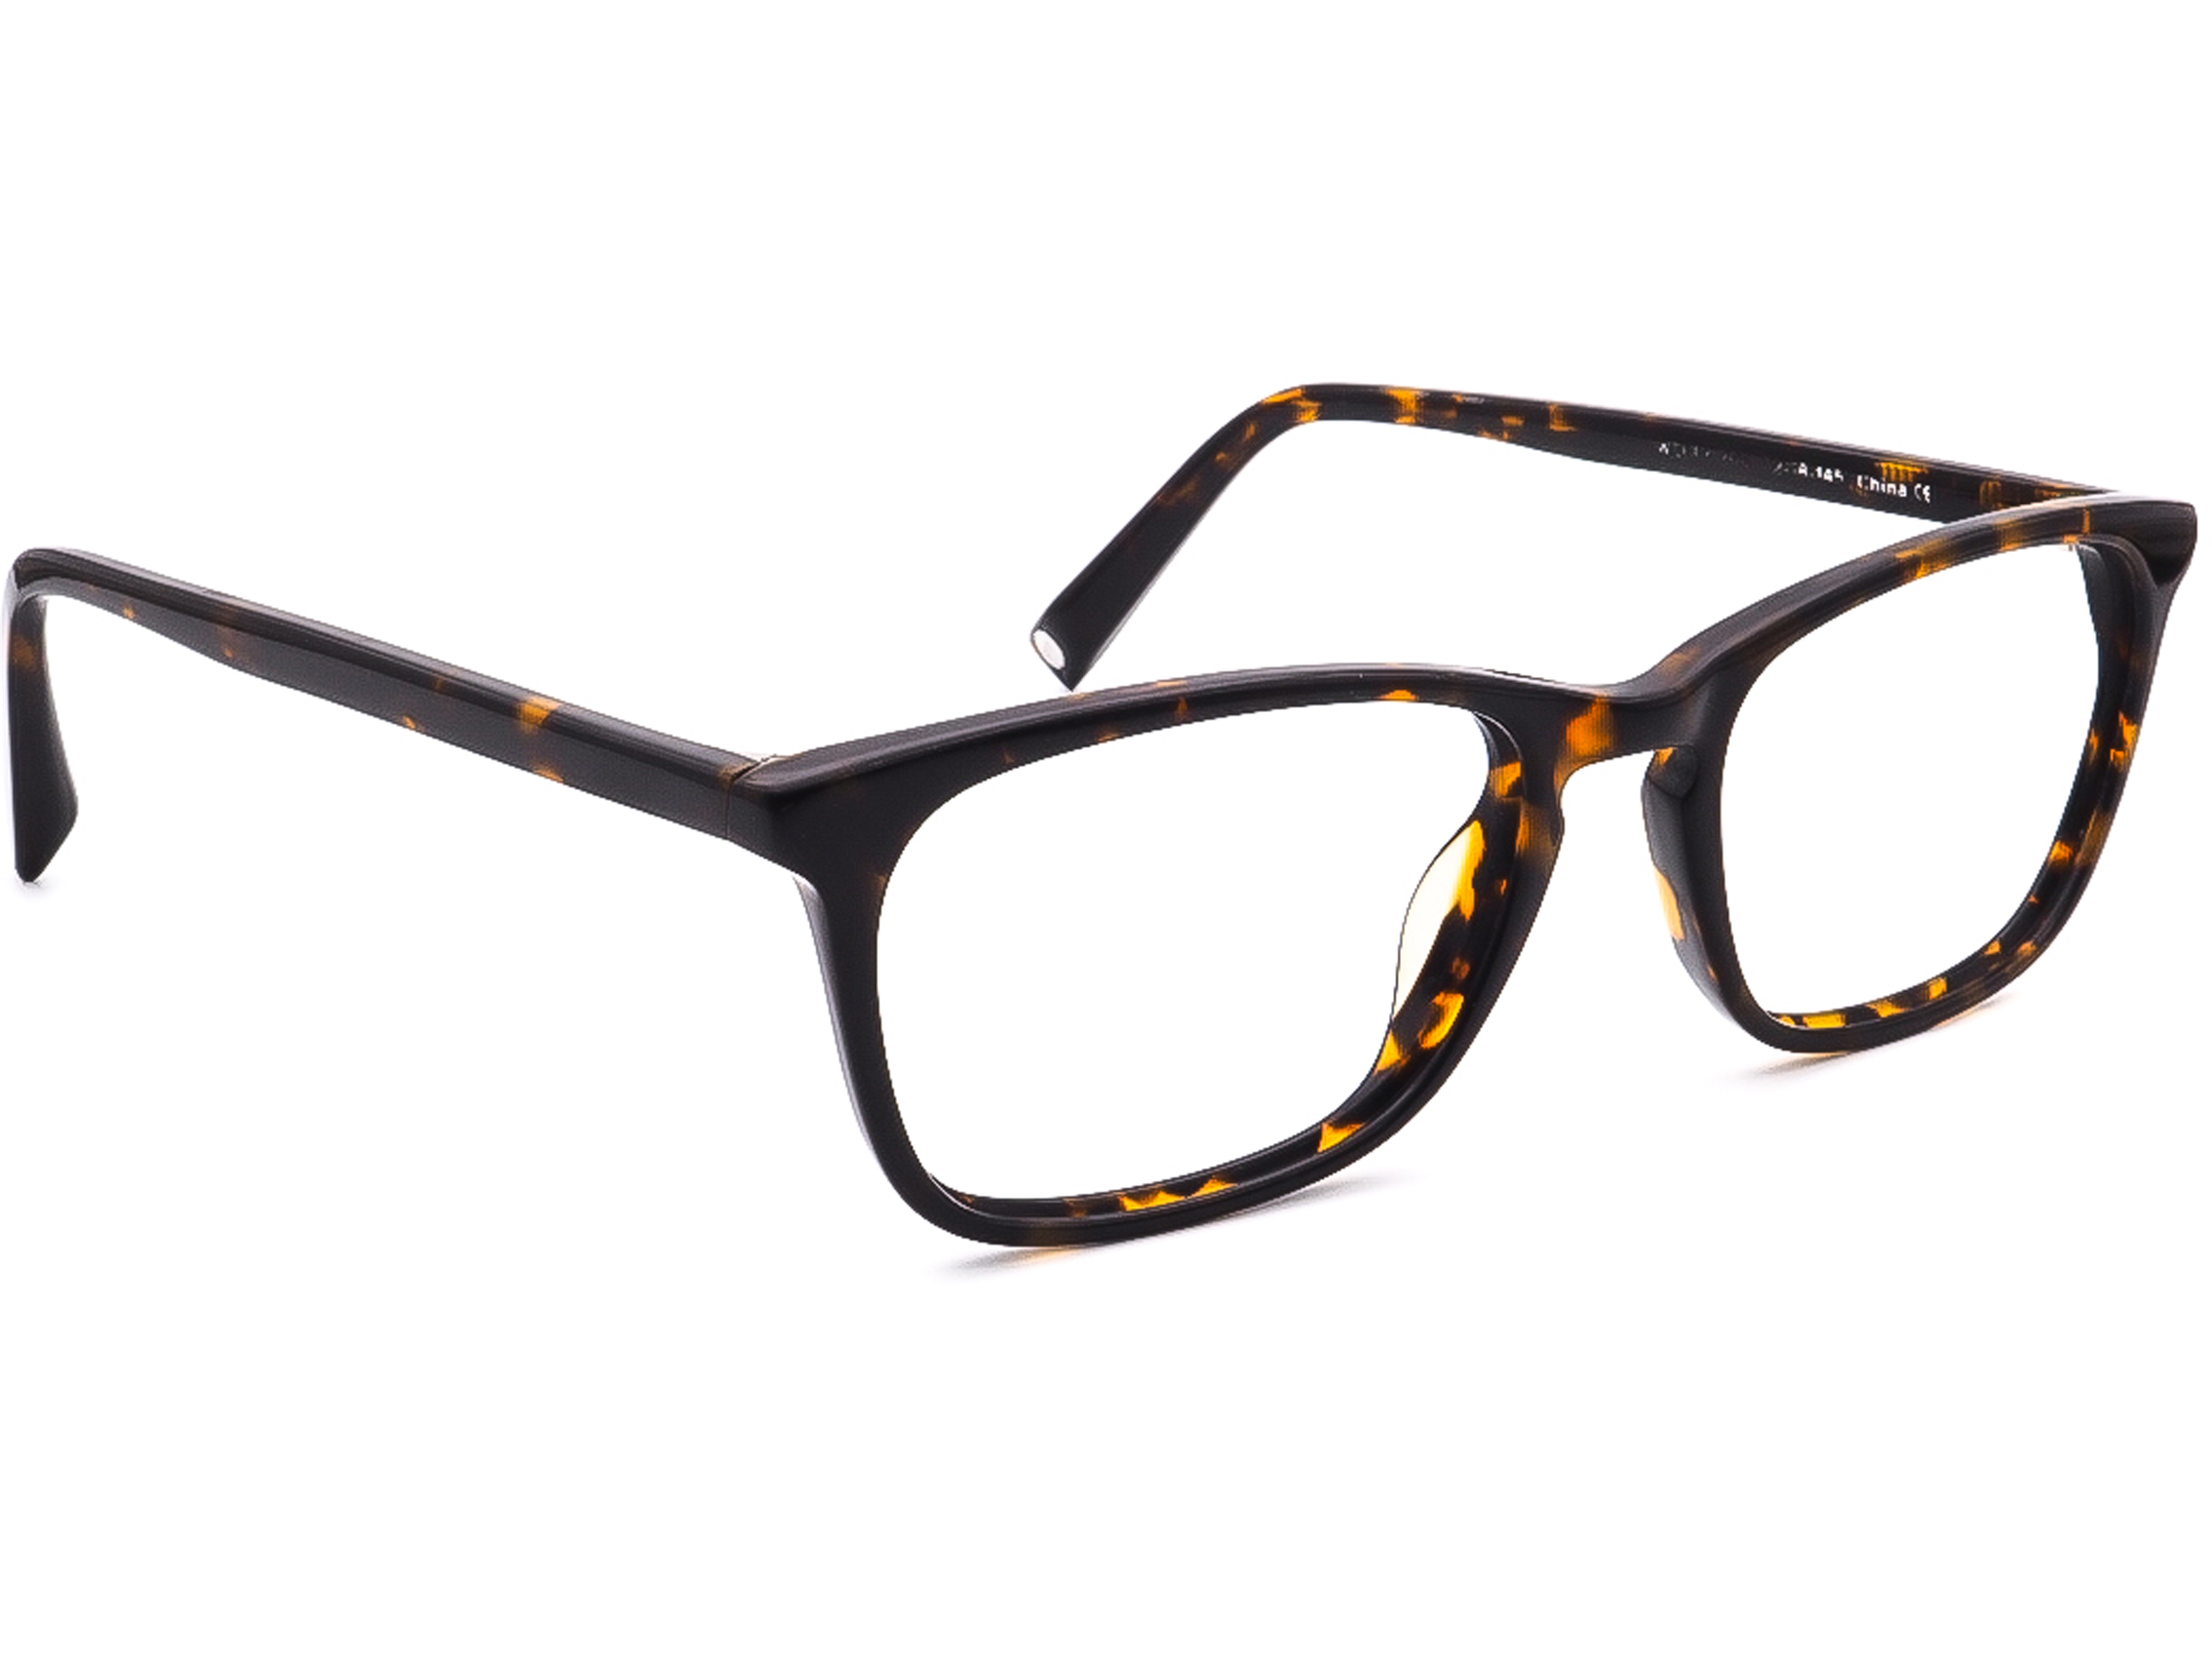 Warby Parker Welty 200 Eyeglasses